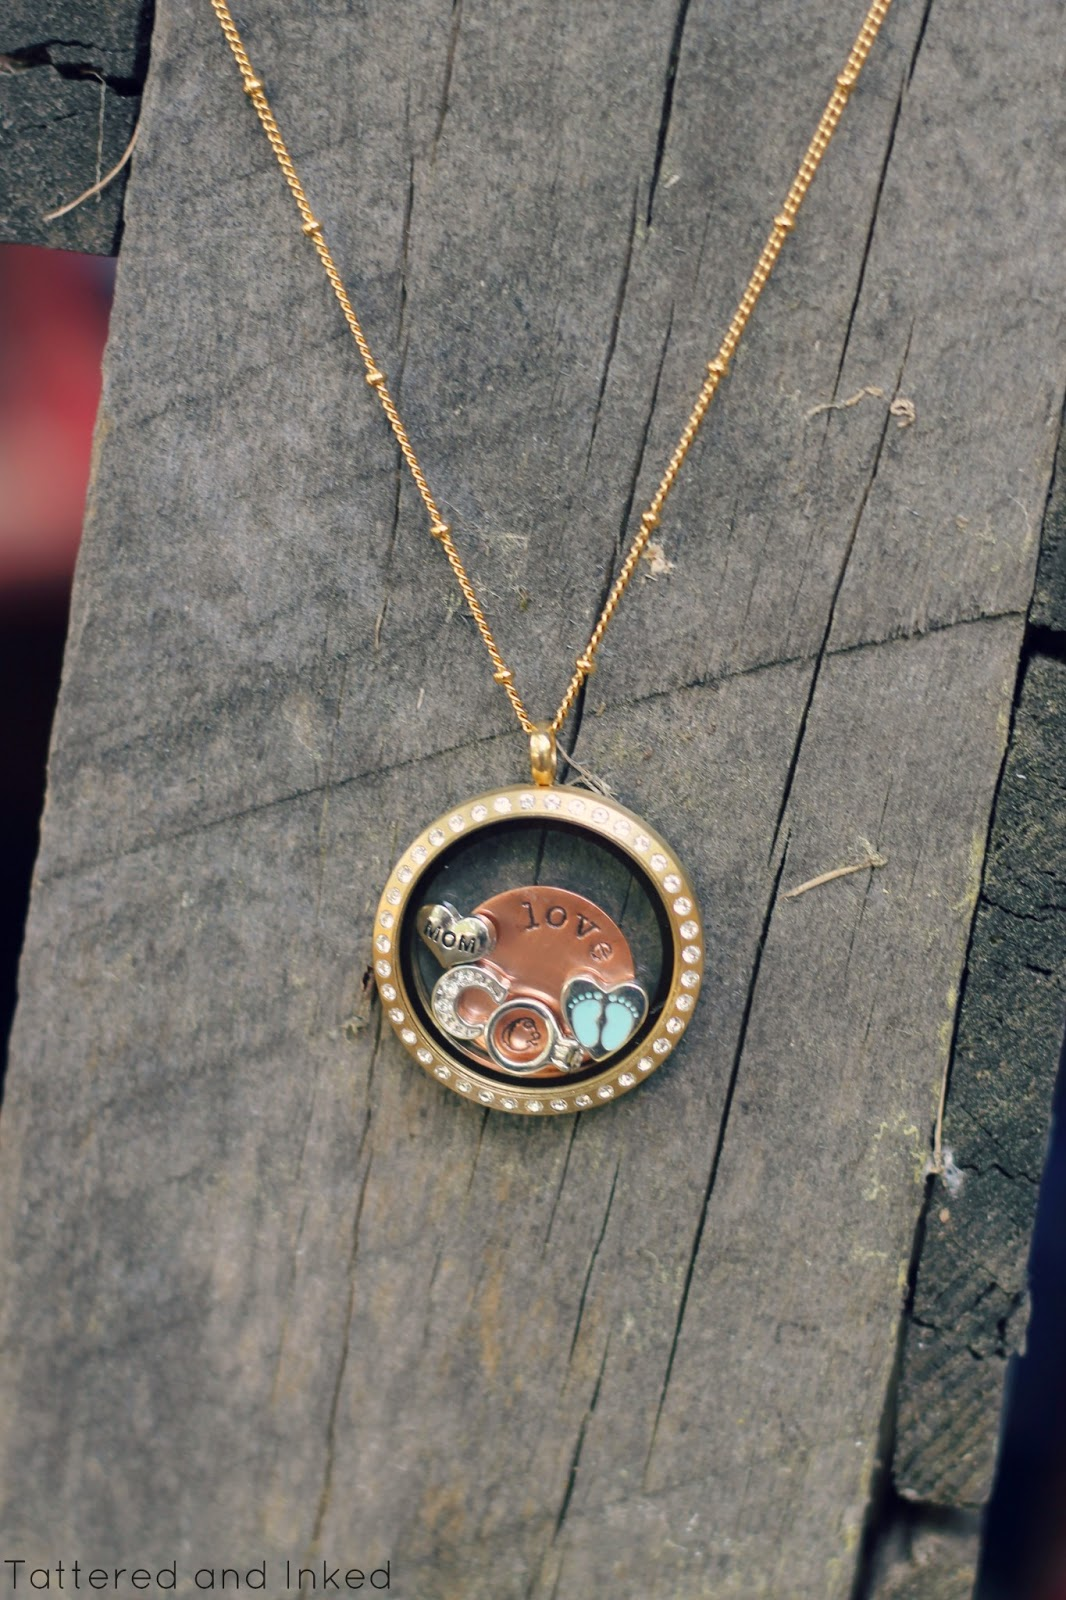 Tattered and Inked: Origami Owl Living Locket Giveaway!!! - photo#32